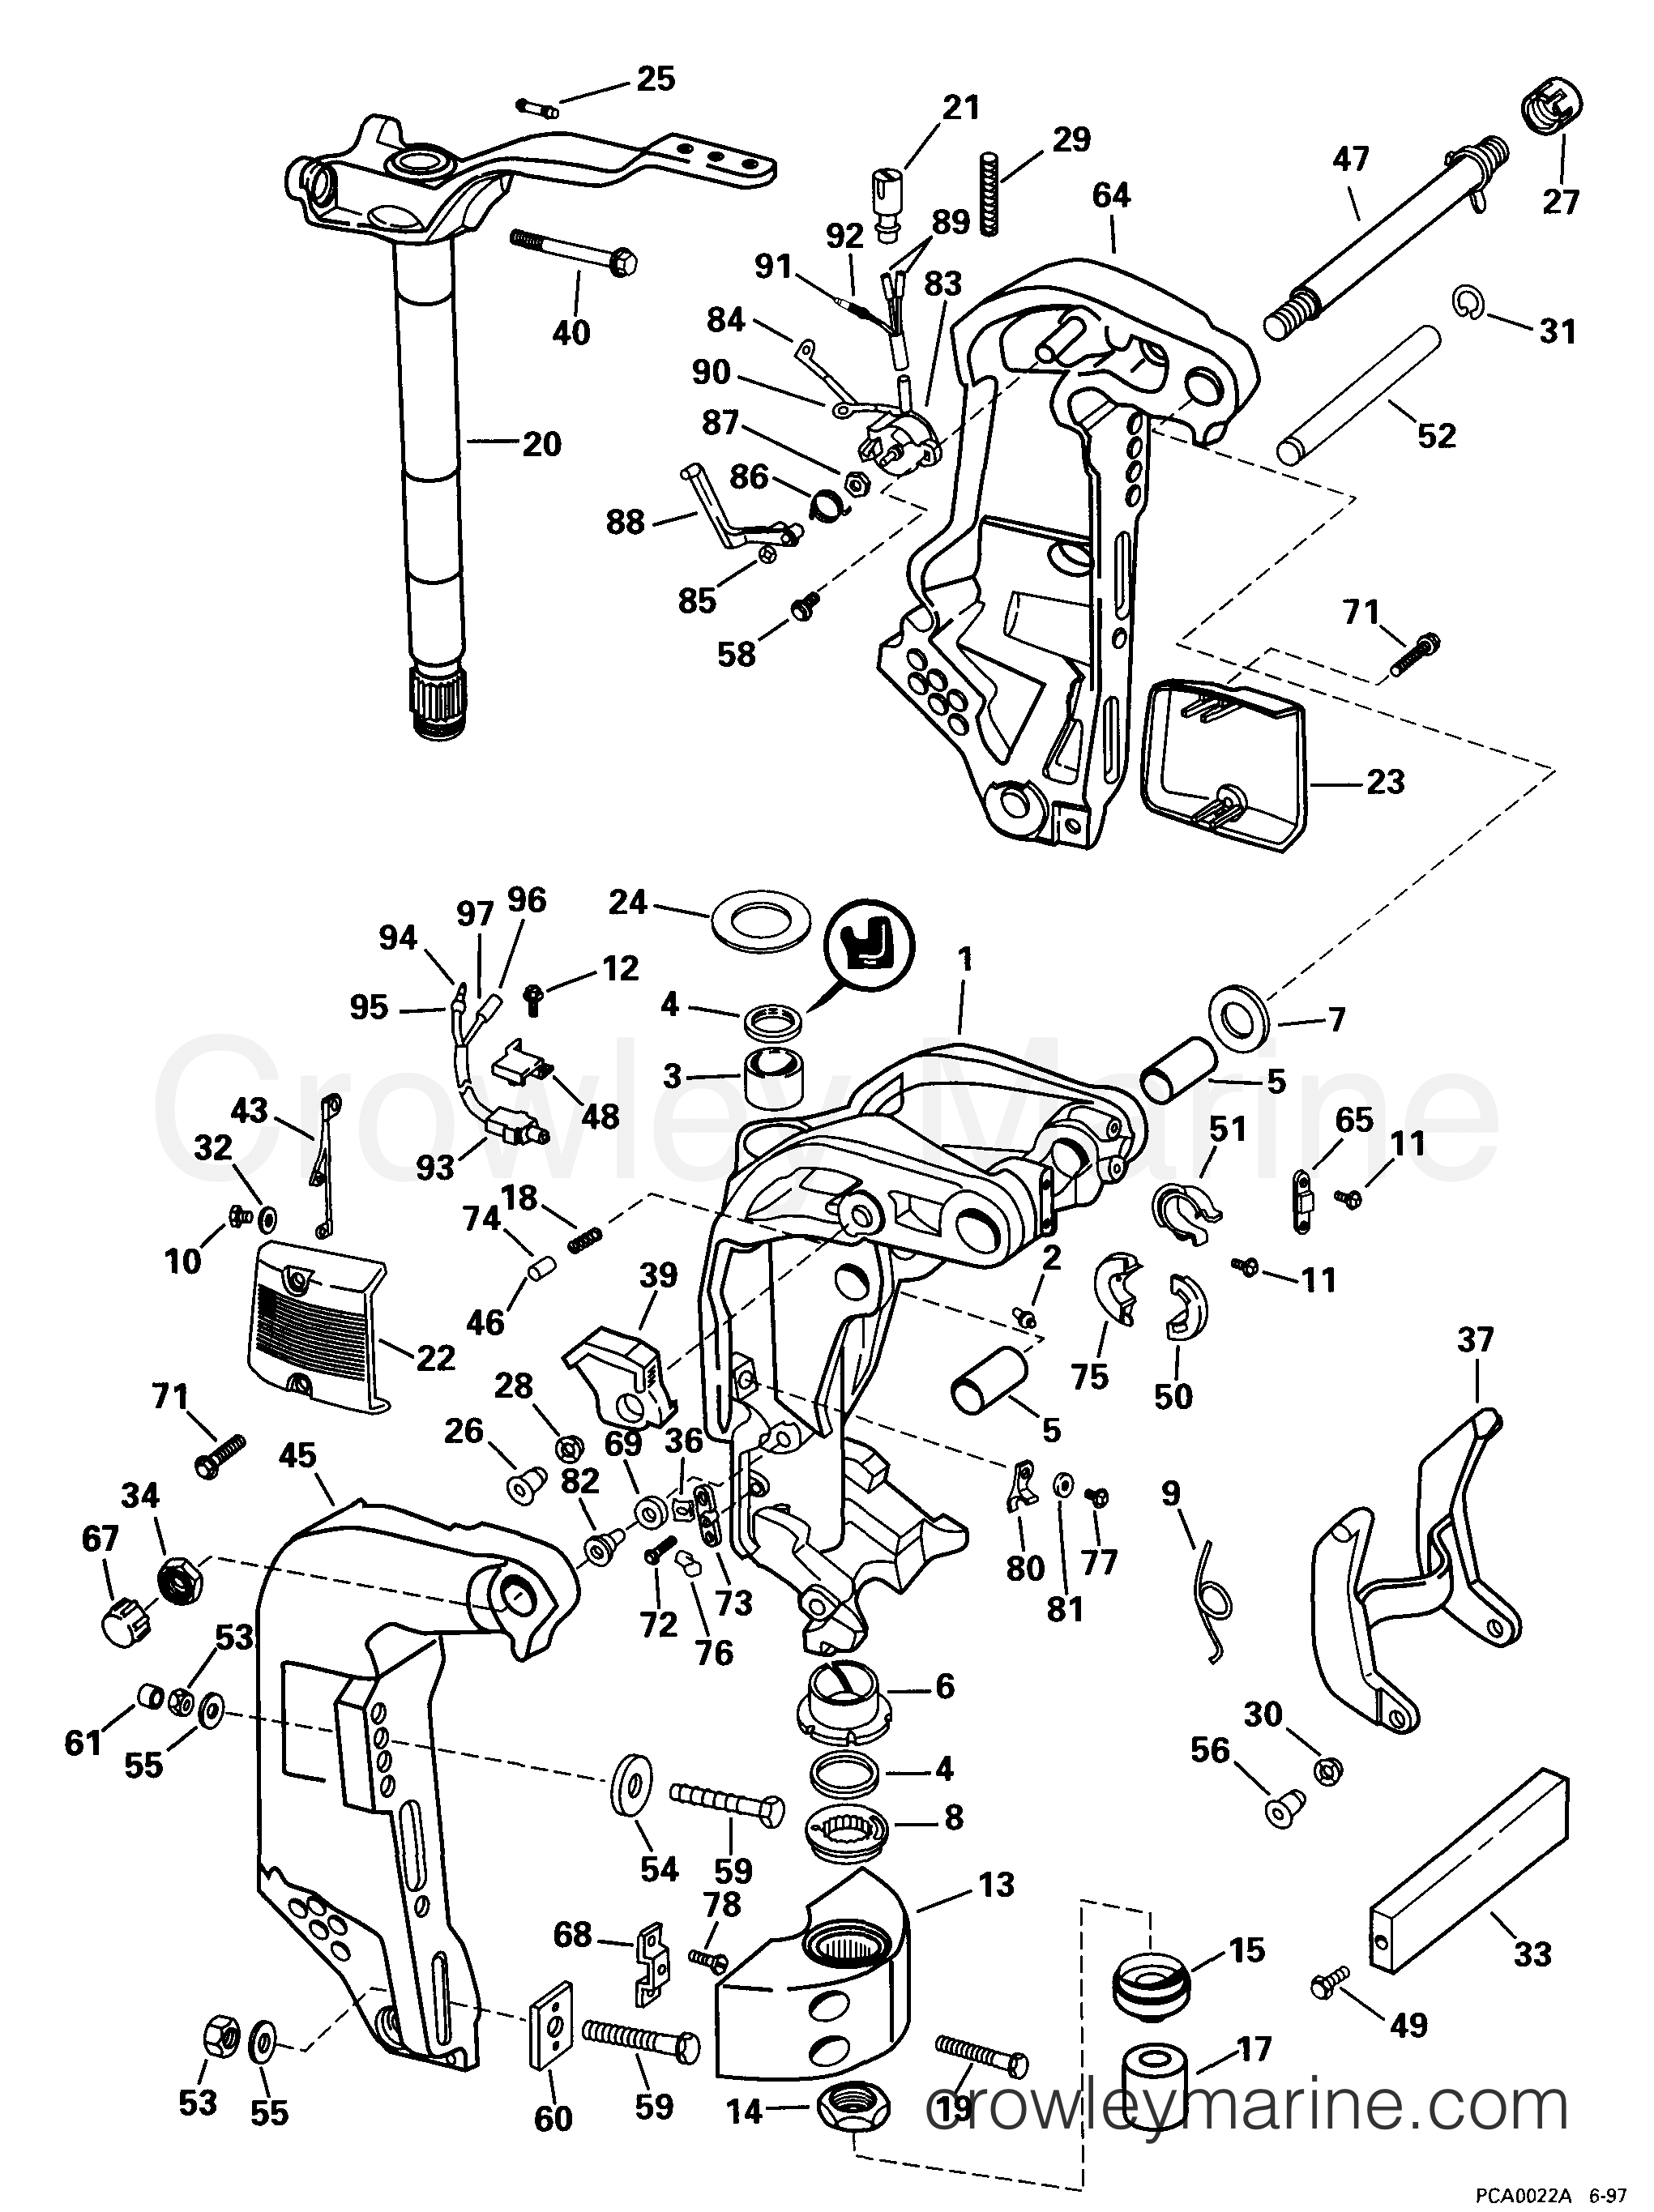 Diagram Mercury 150 Outboard